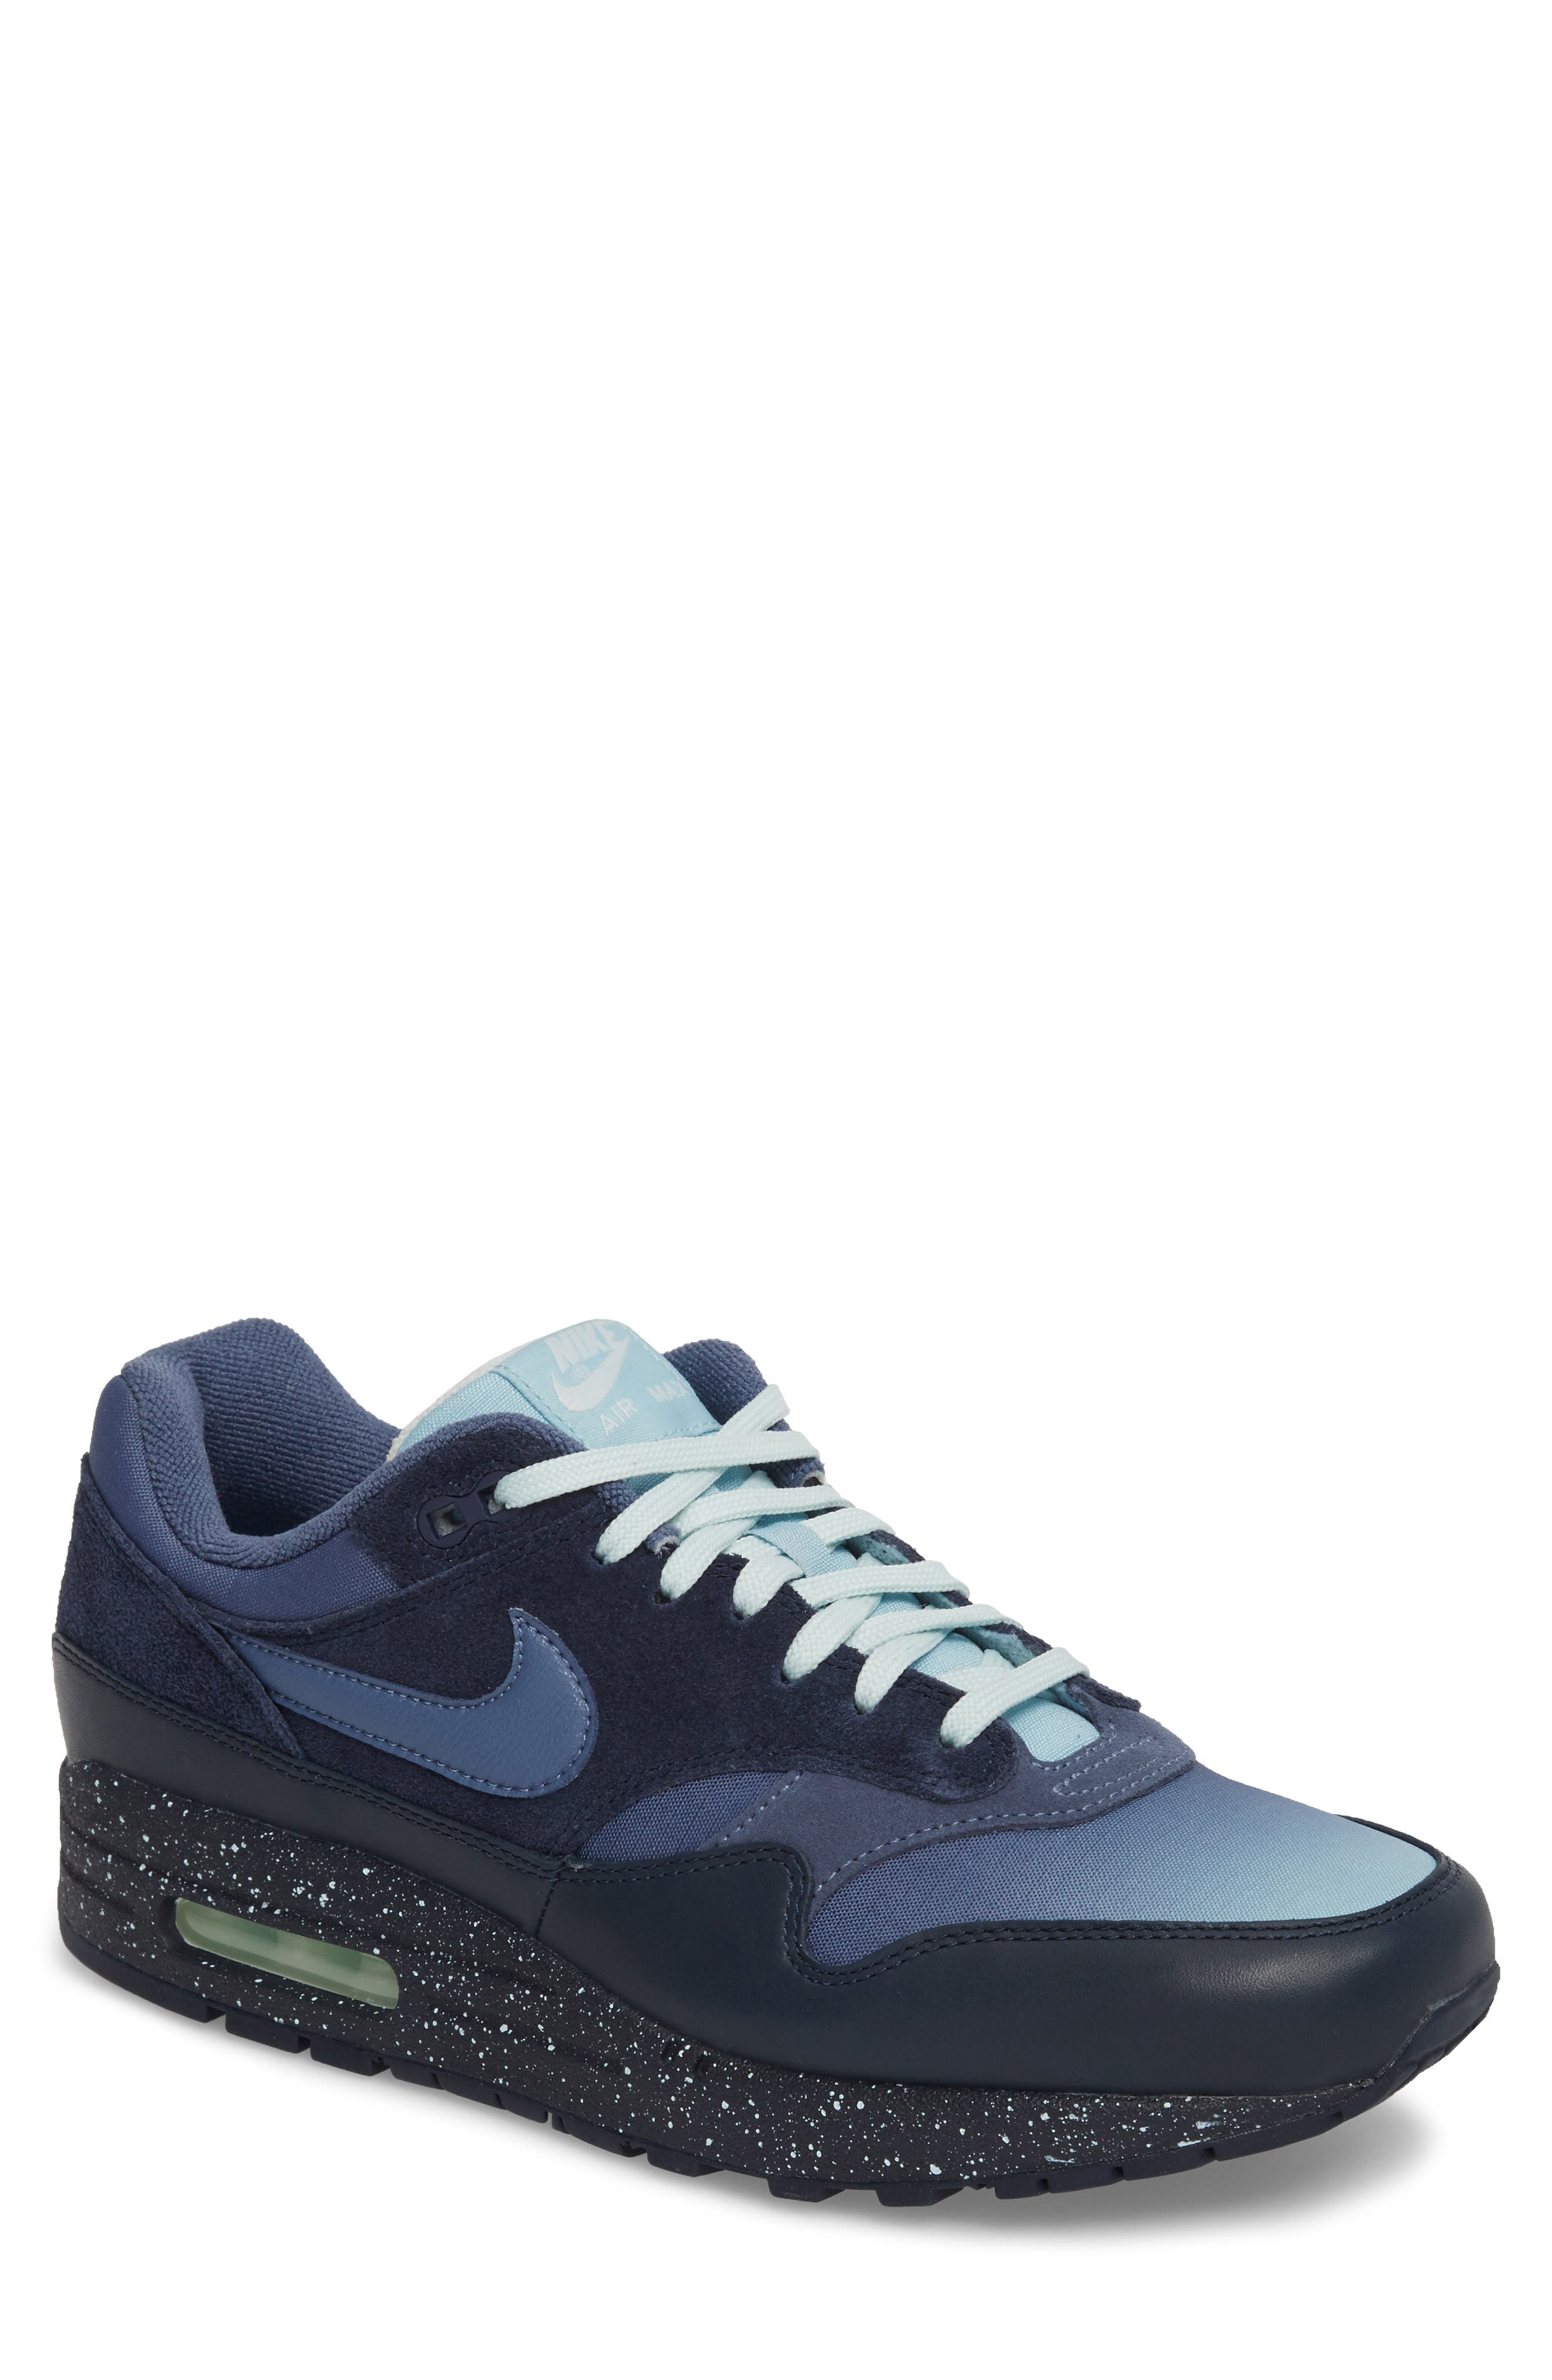 Nike Air Max 1 Premium Sneaker (Men)